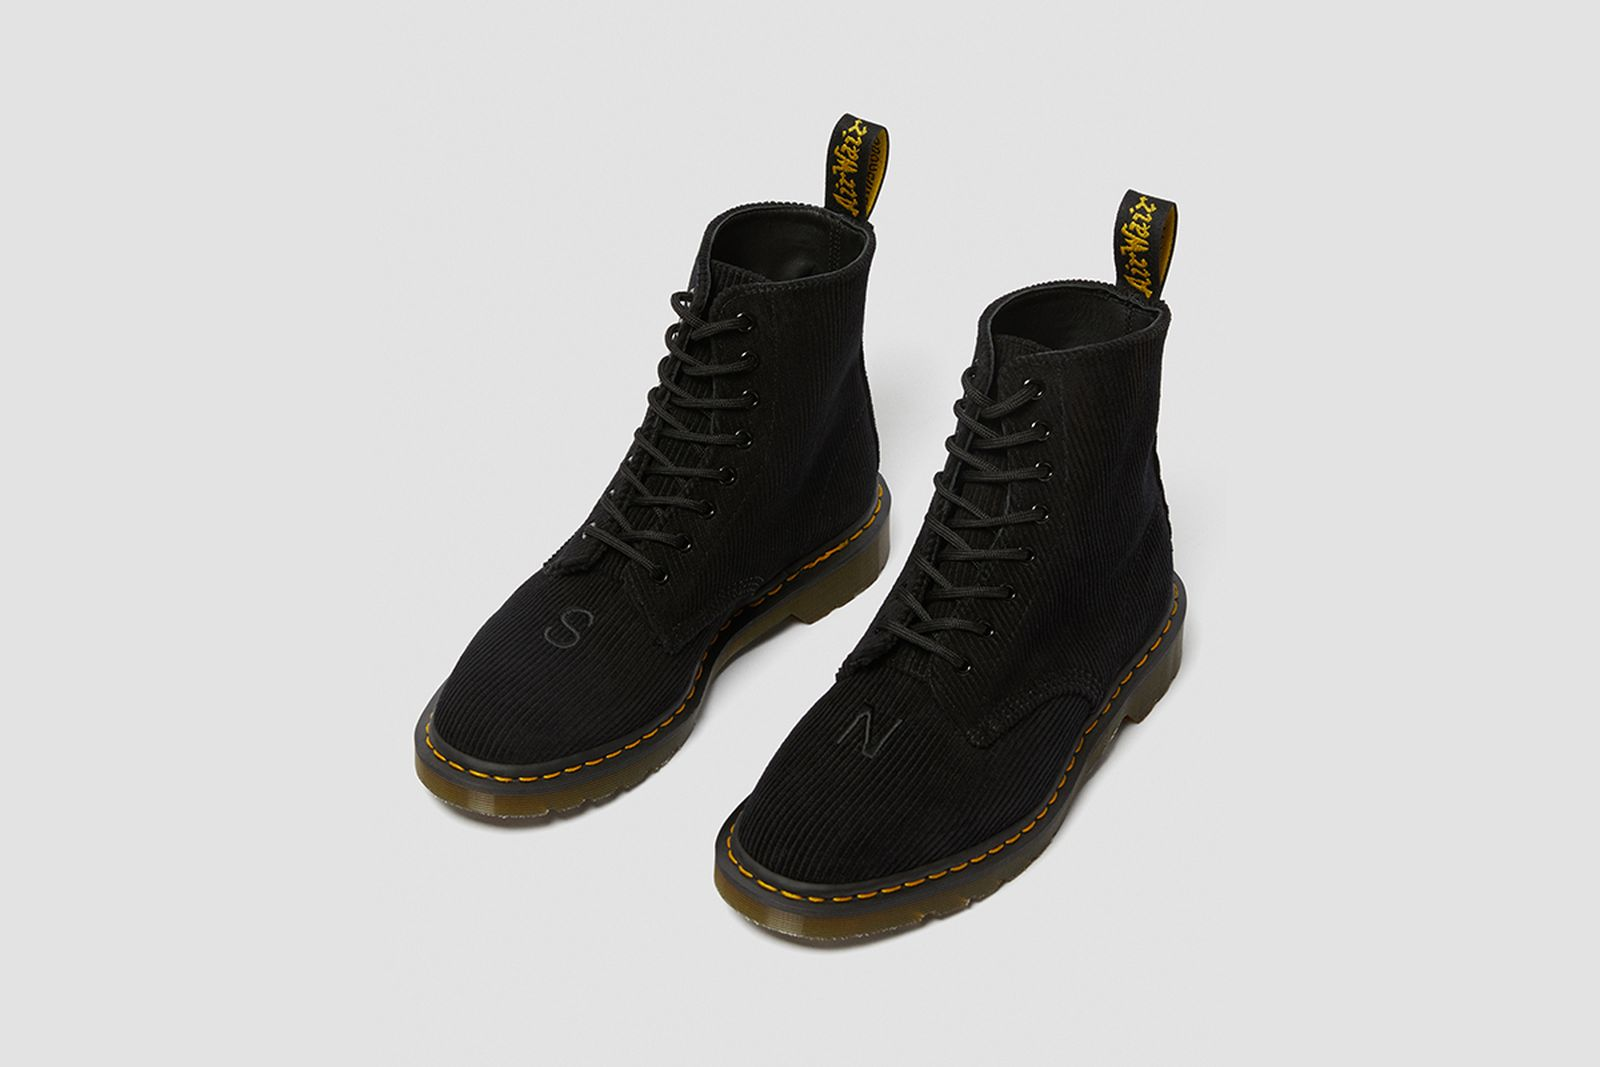 undercover-dr-martens-1460-release-date-price-06